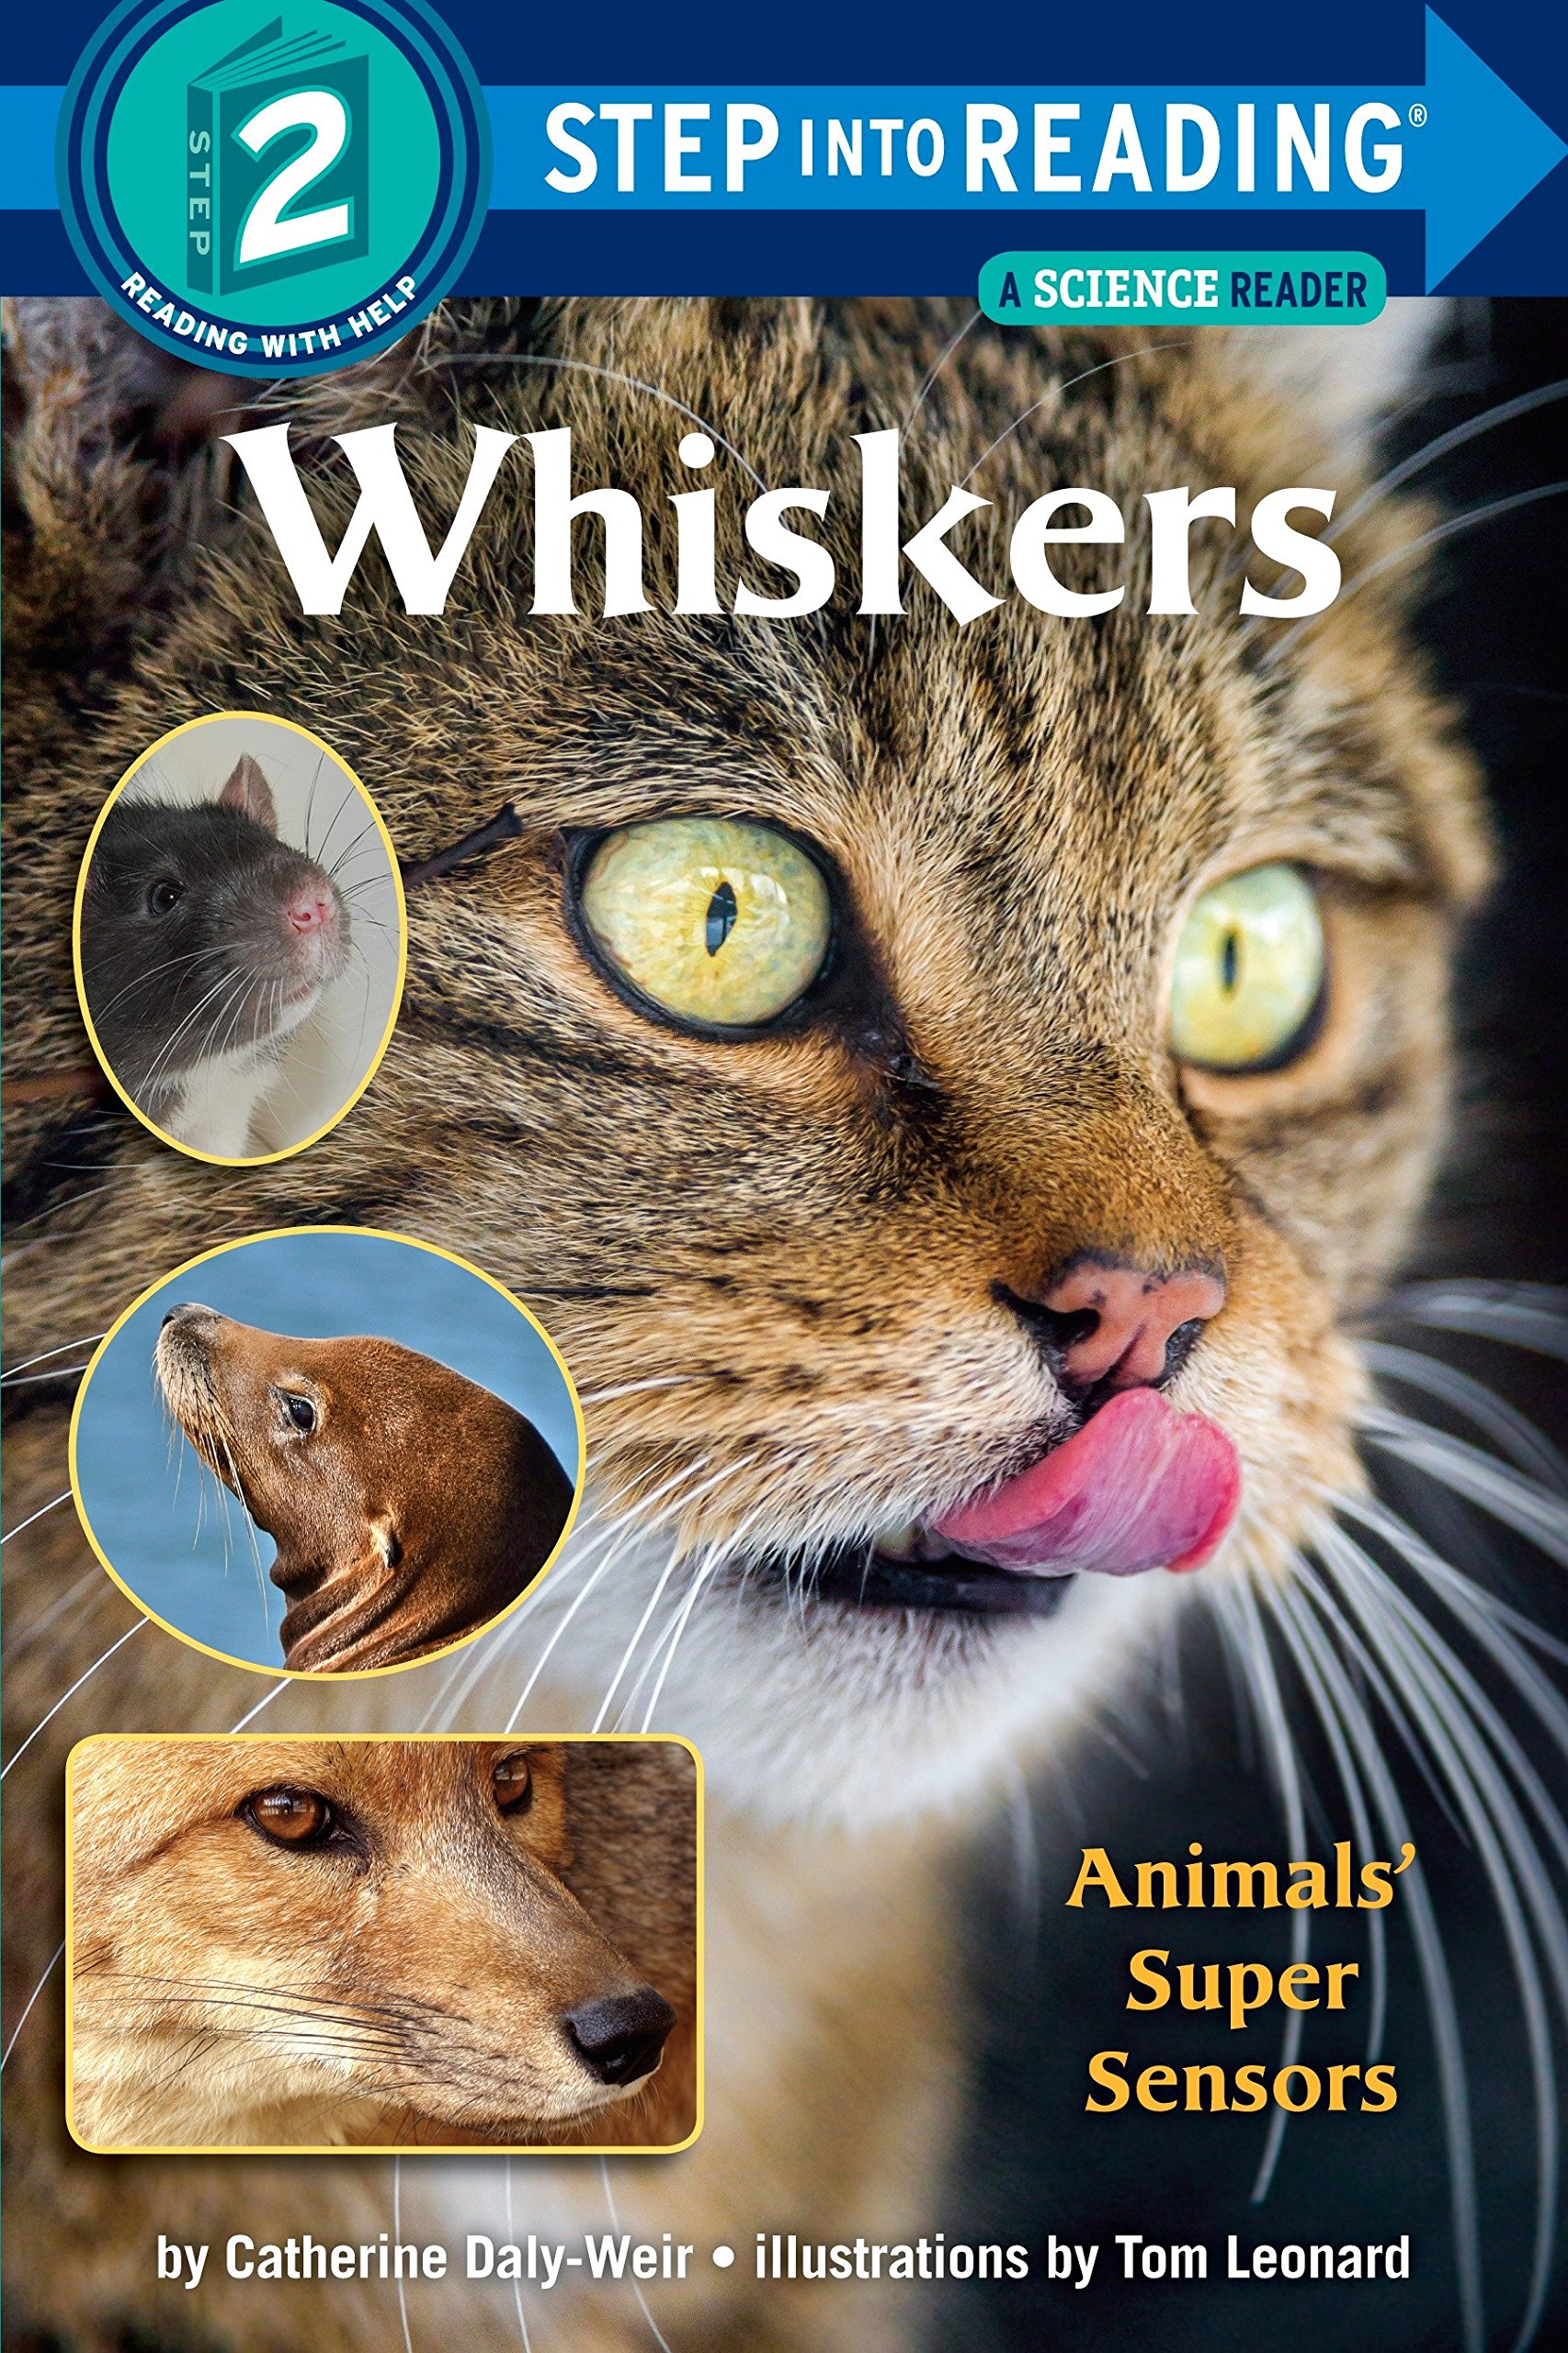 Amazon.com: Whiskers (Step-Into-Reading, Step 2) (9780307262141): Catherine  Daly-Weir, Tom Leonard: Books